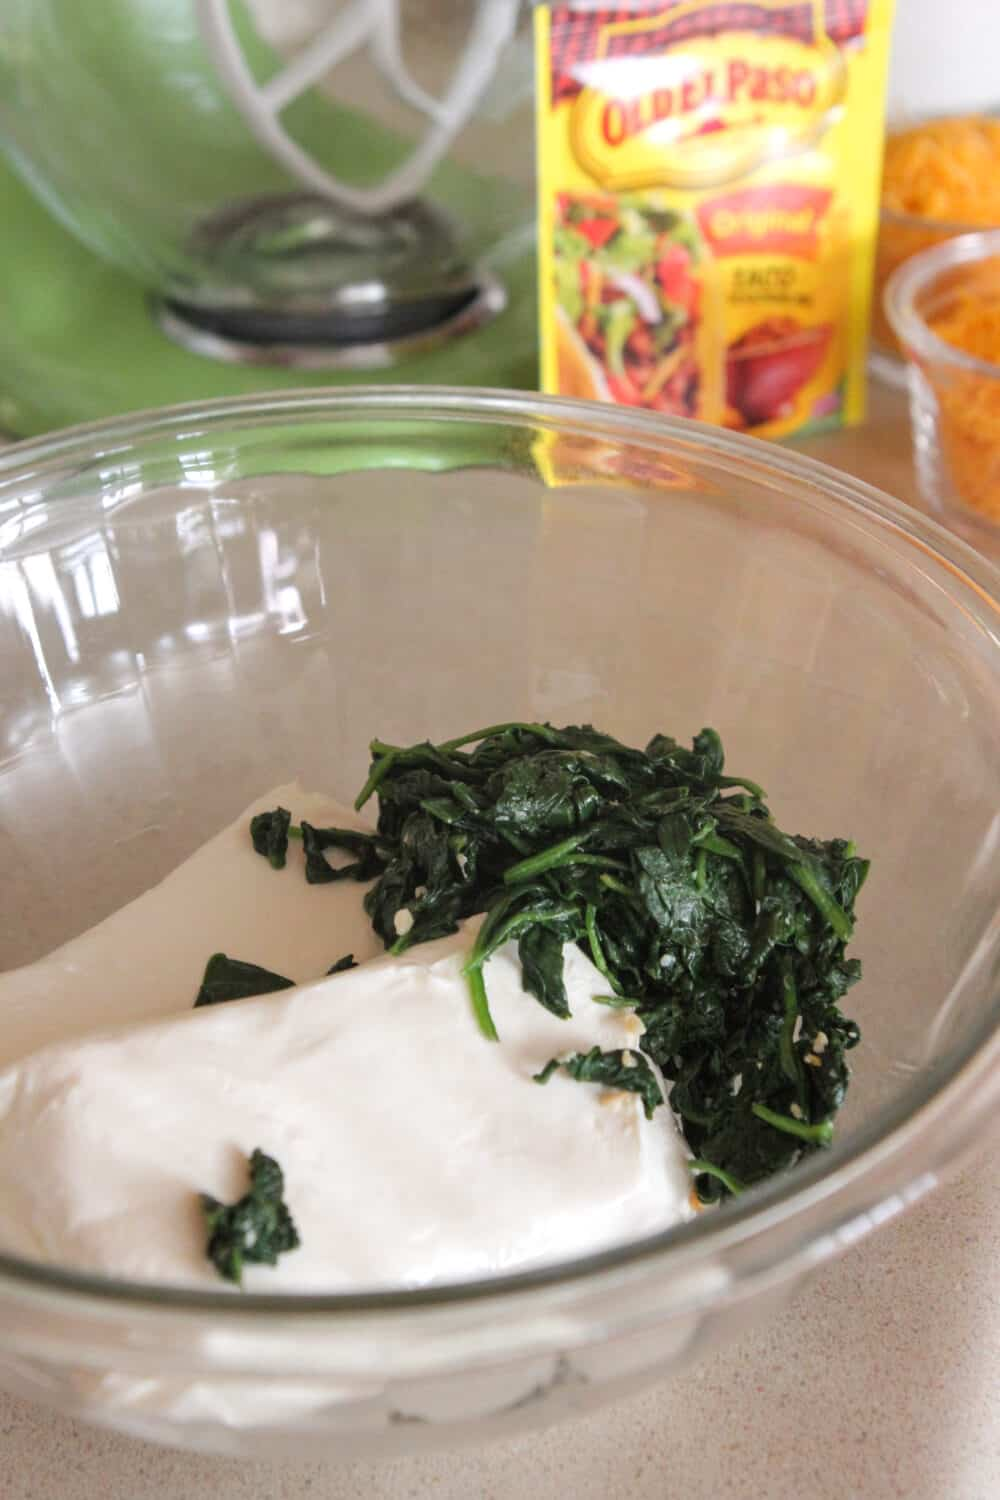 cream cheese and spinach in mixing bowl